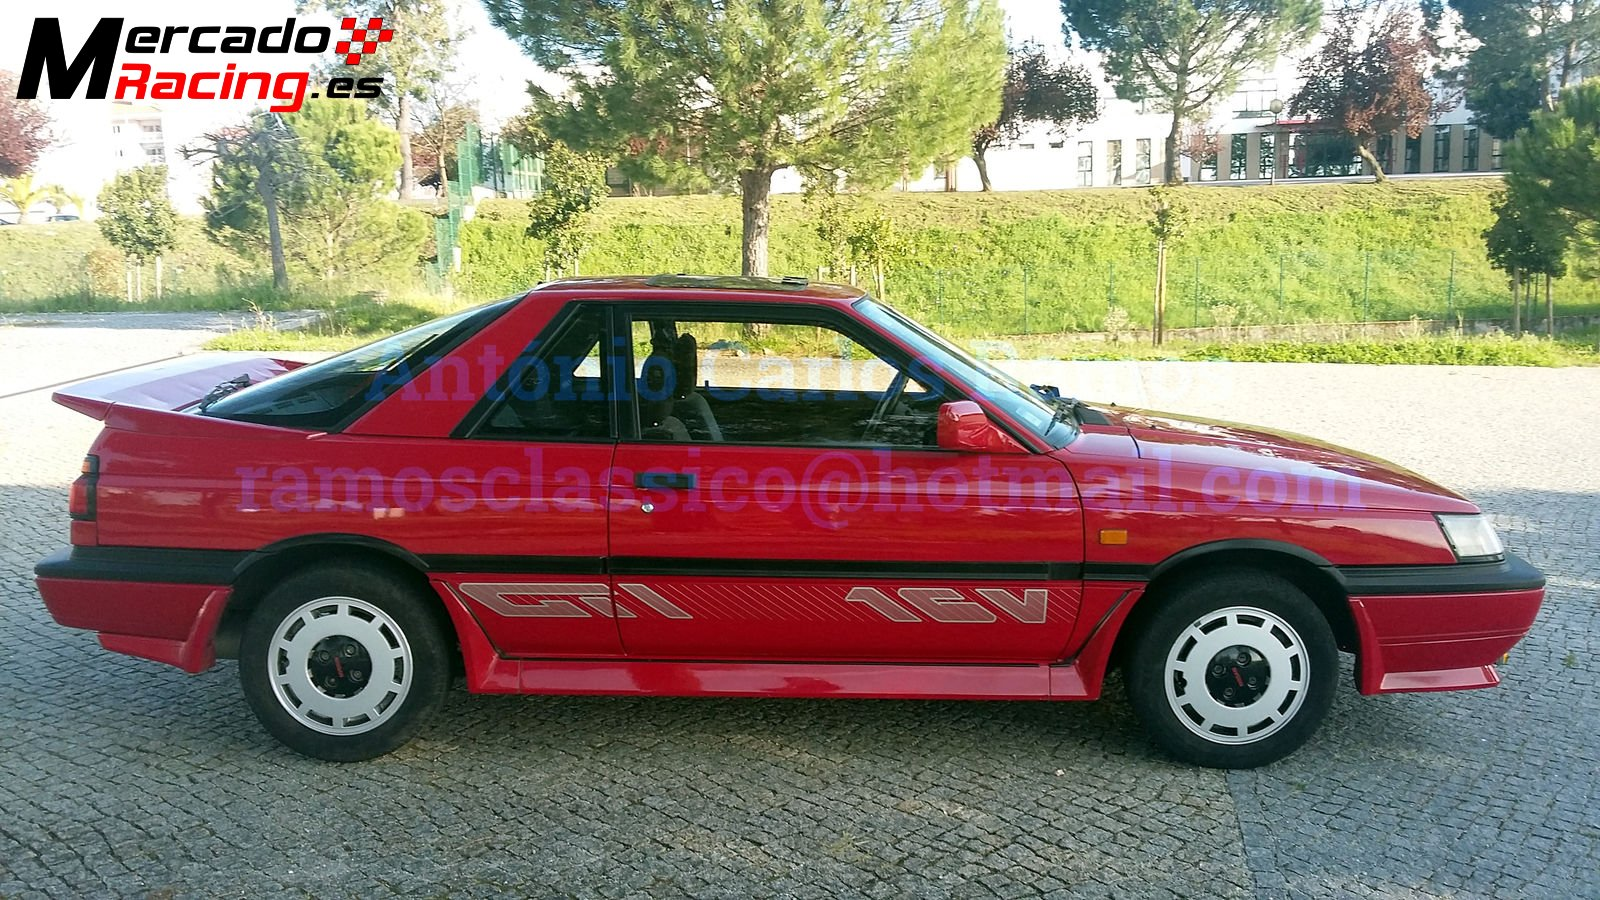 Nissan Sunny Gti Coupe Rz1 1989